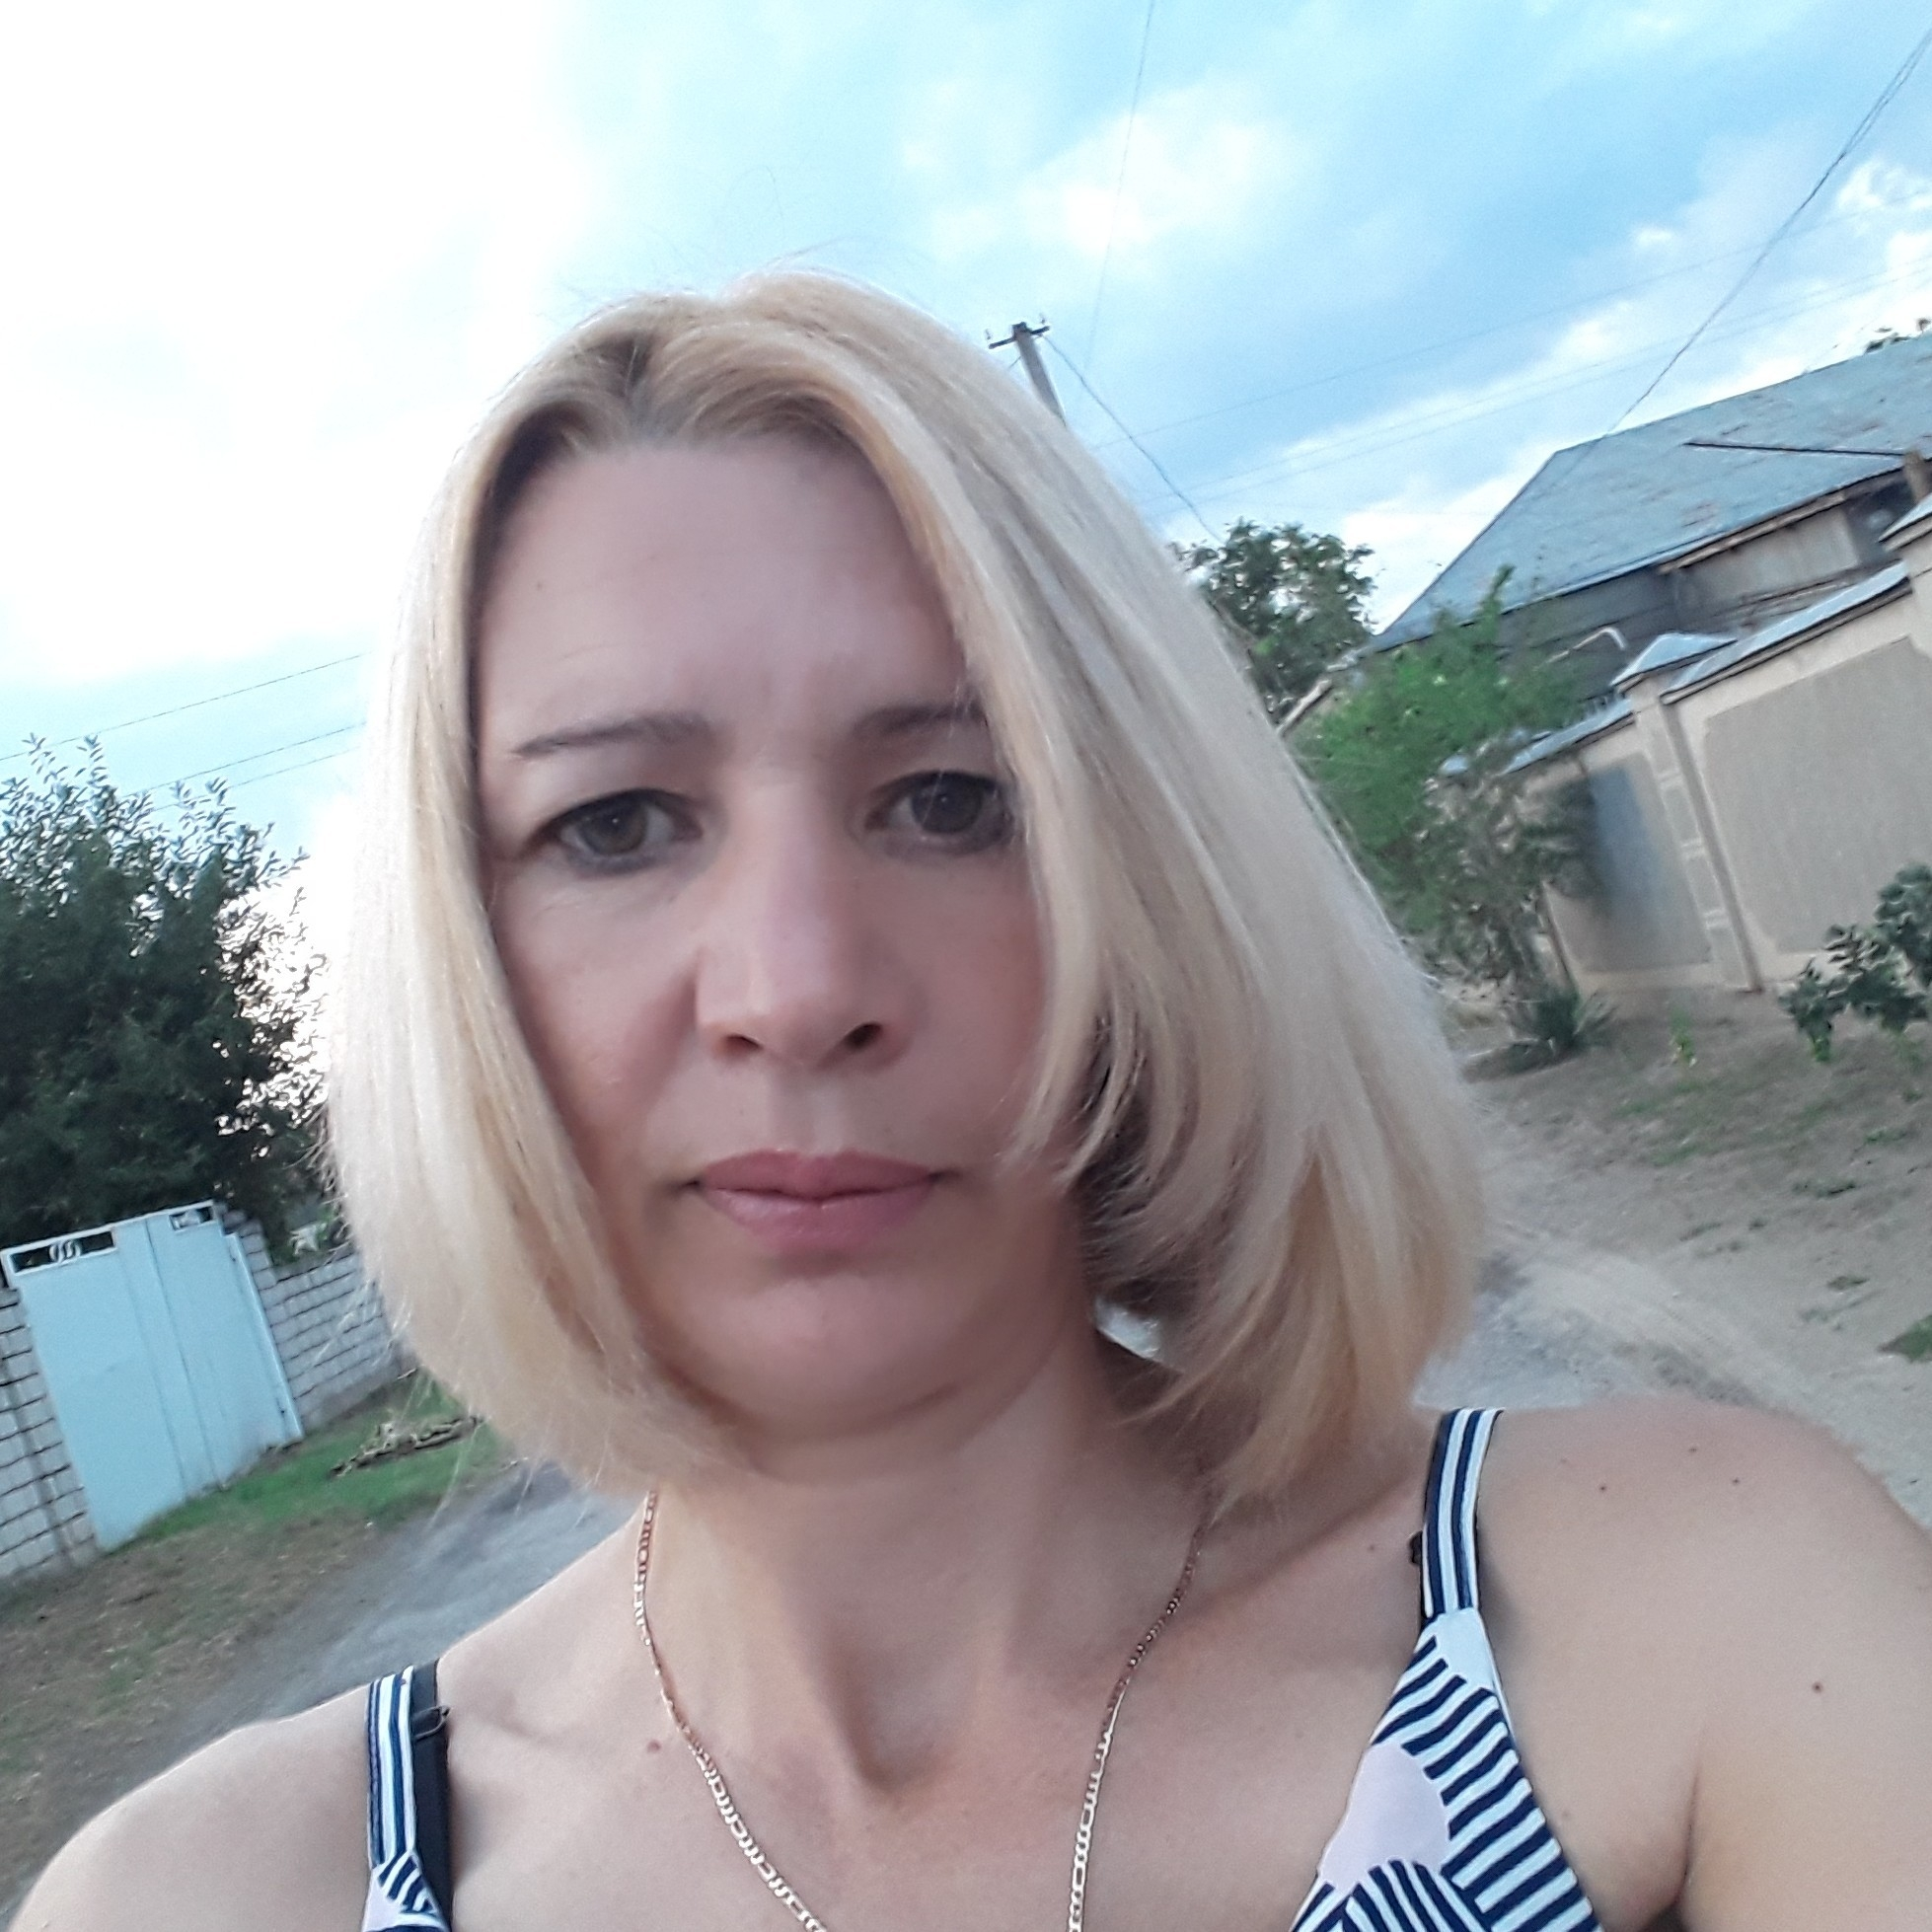 Video Call with guestuser_3374080